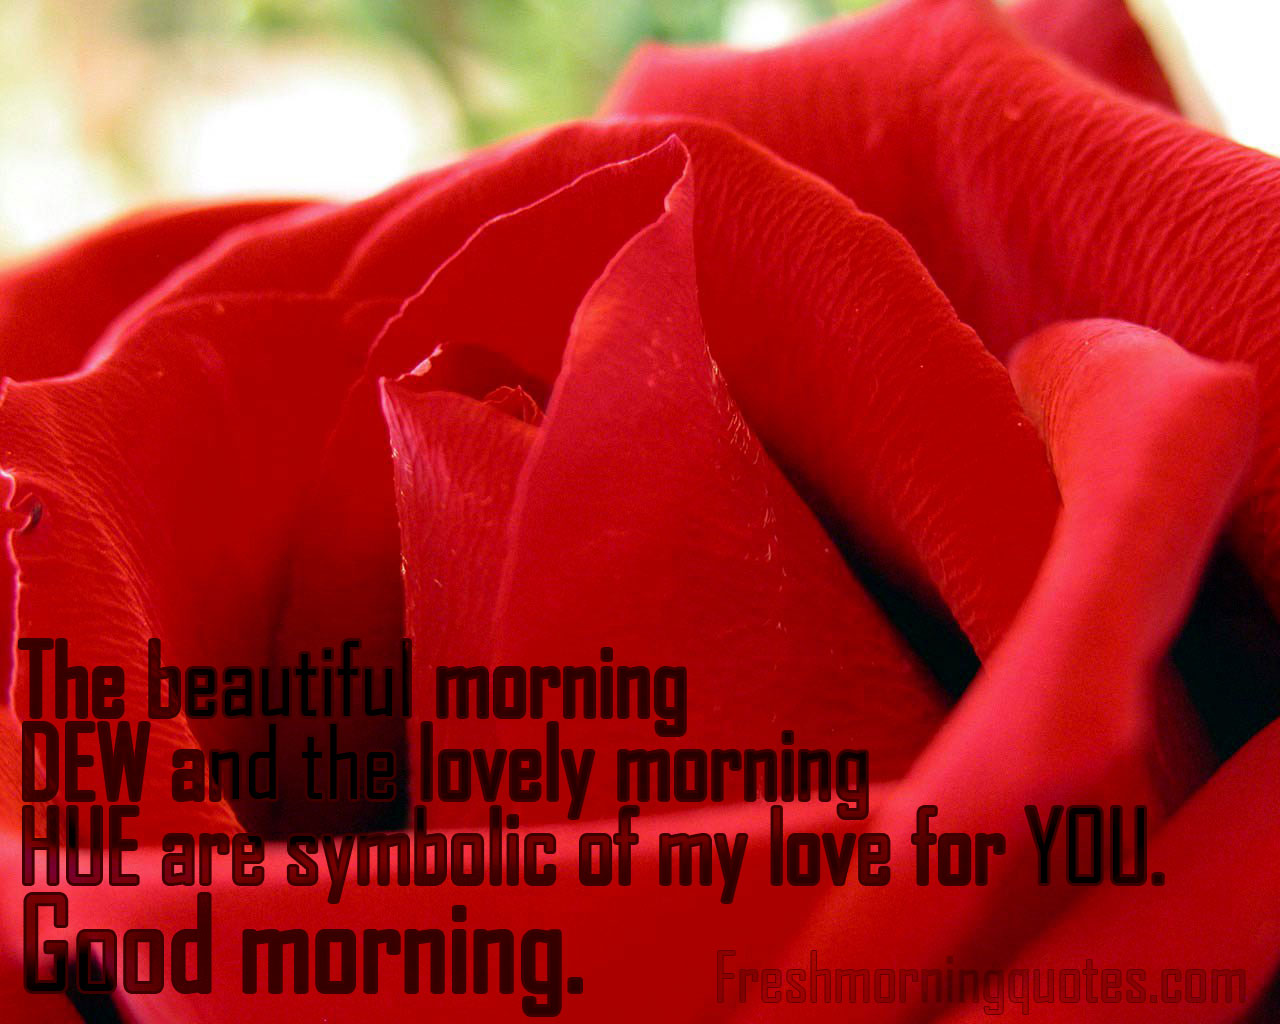 Good Morning My Love Wife Images : Good morning quotes sms text messages in english